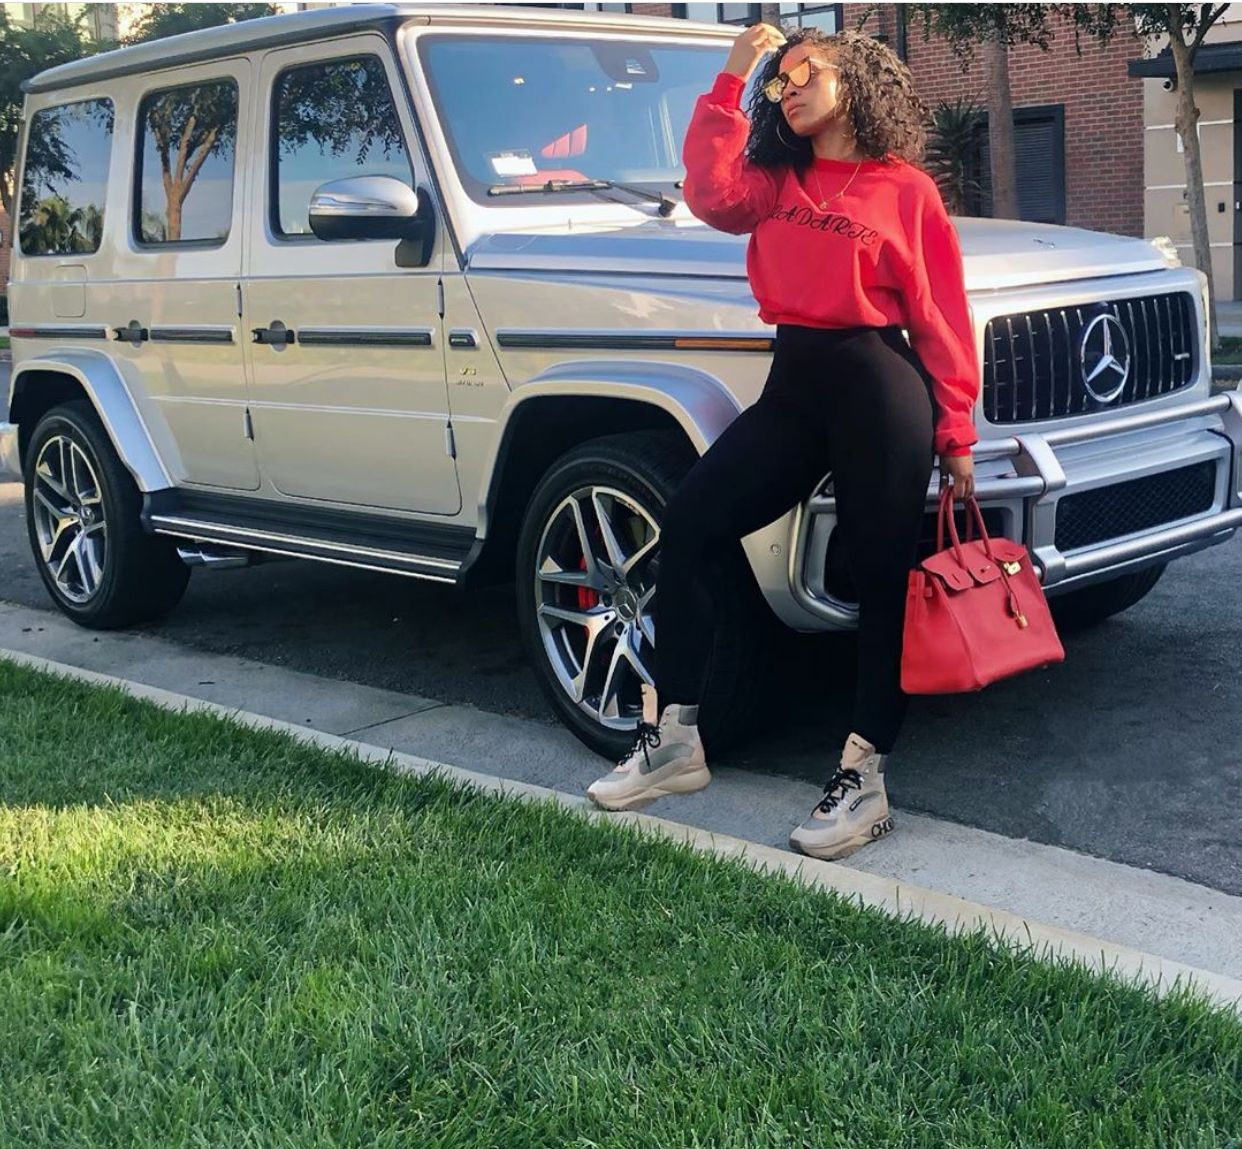 Pin By Mikayla On Casual Pt 6 Future Car Fashion Inspo My Ride [ 1149 x 1242 Pixel ]